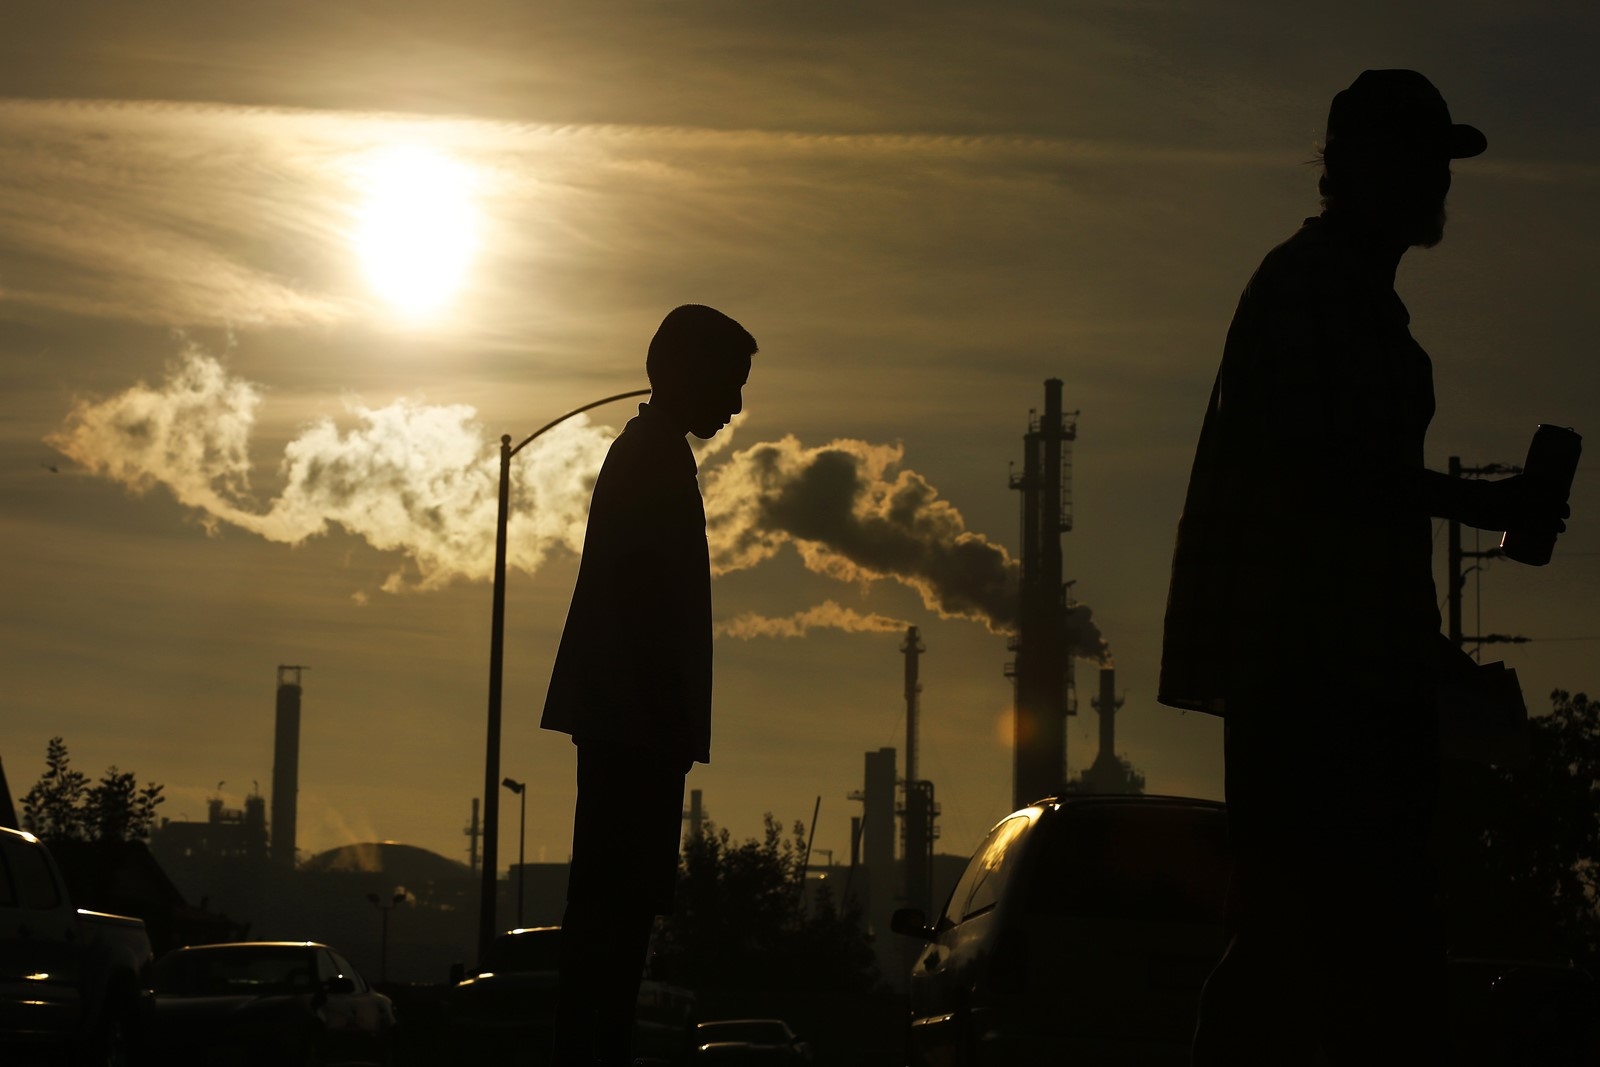 California's commitment to 100% renewable energy, enshrined in a new law, could motivate cities and states to make similar pledges at the summit in San Francisco this week. Above, the Phillips 66 refinery in Wilmington is seen from Emden Street in 2016. — Photograph: Rick Loomis/Los Angeles Times.